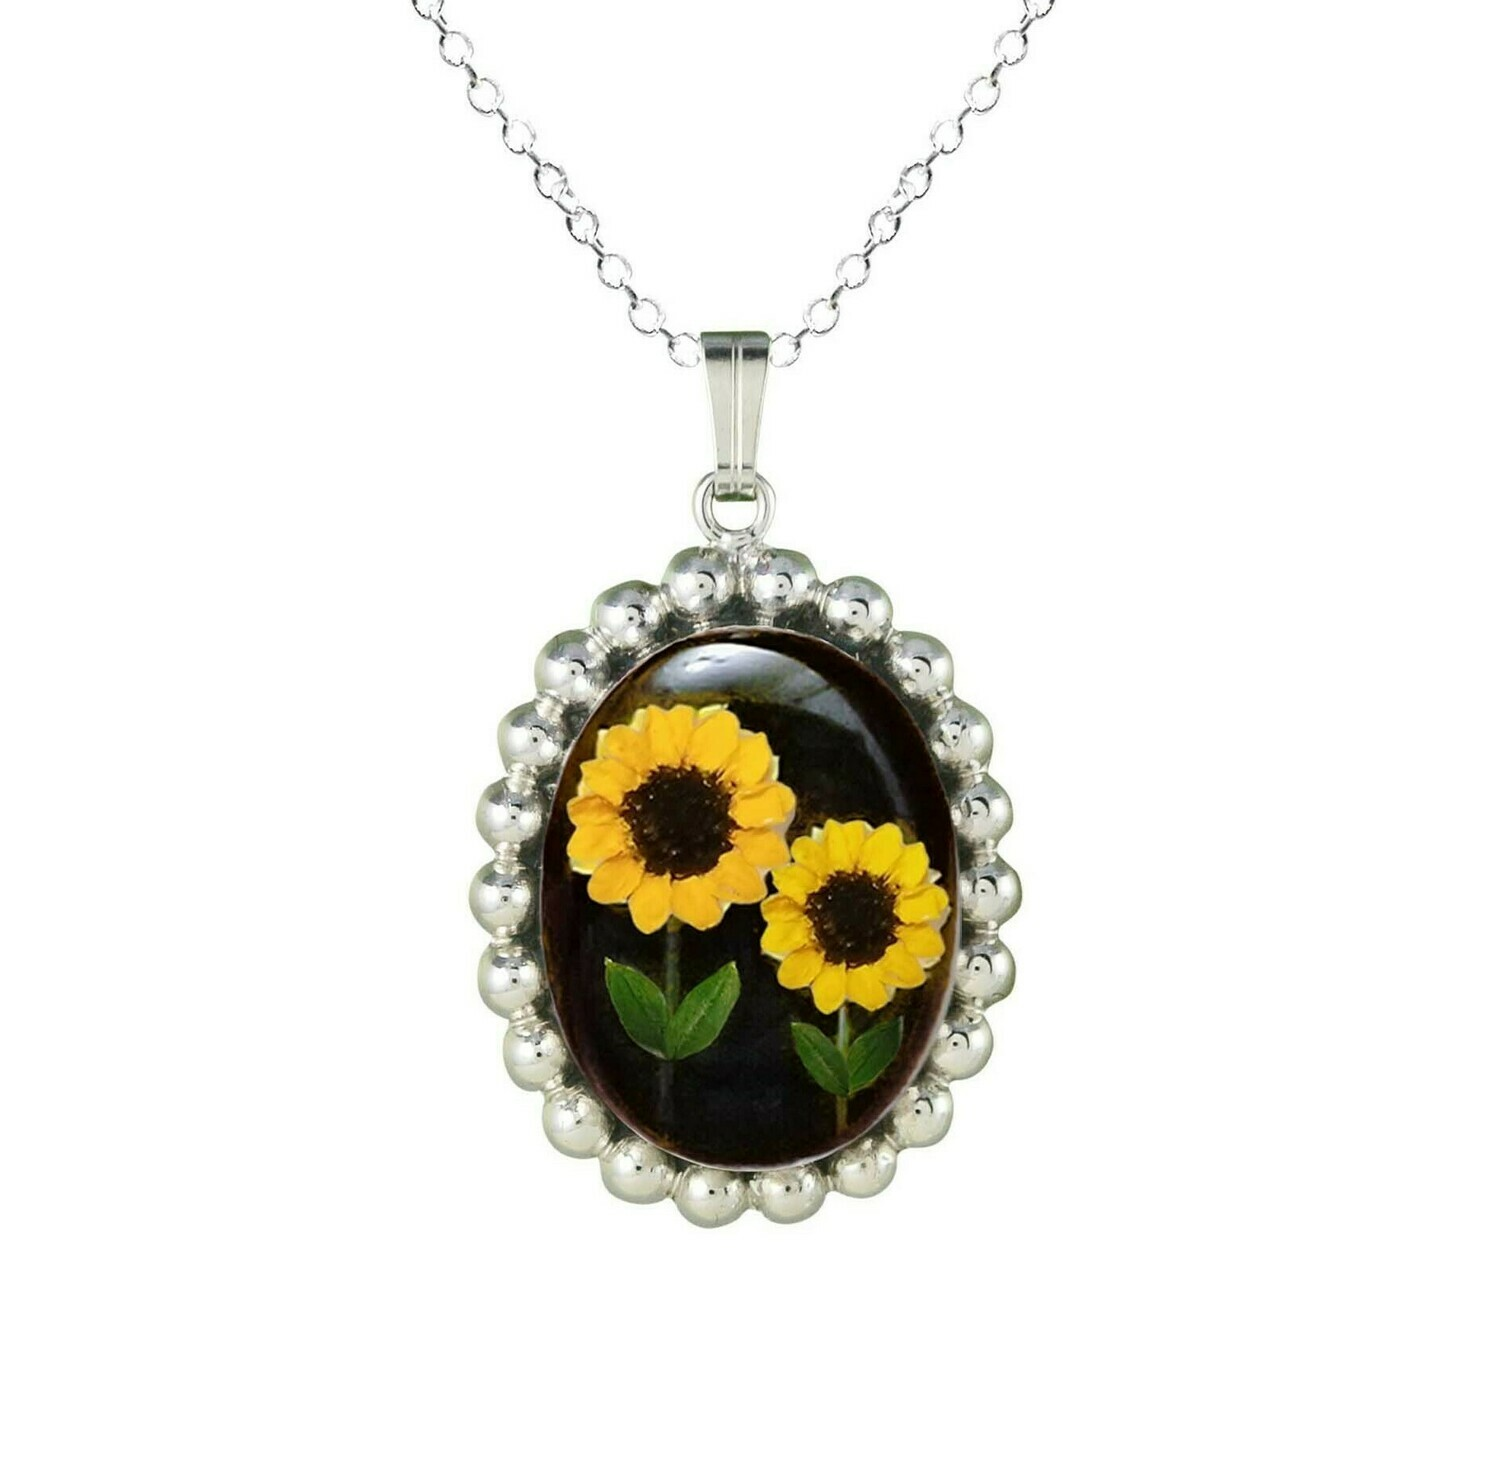 Sunflower Necklace, Oval Medallion, Black Background